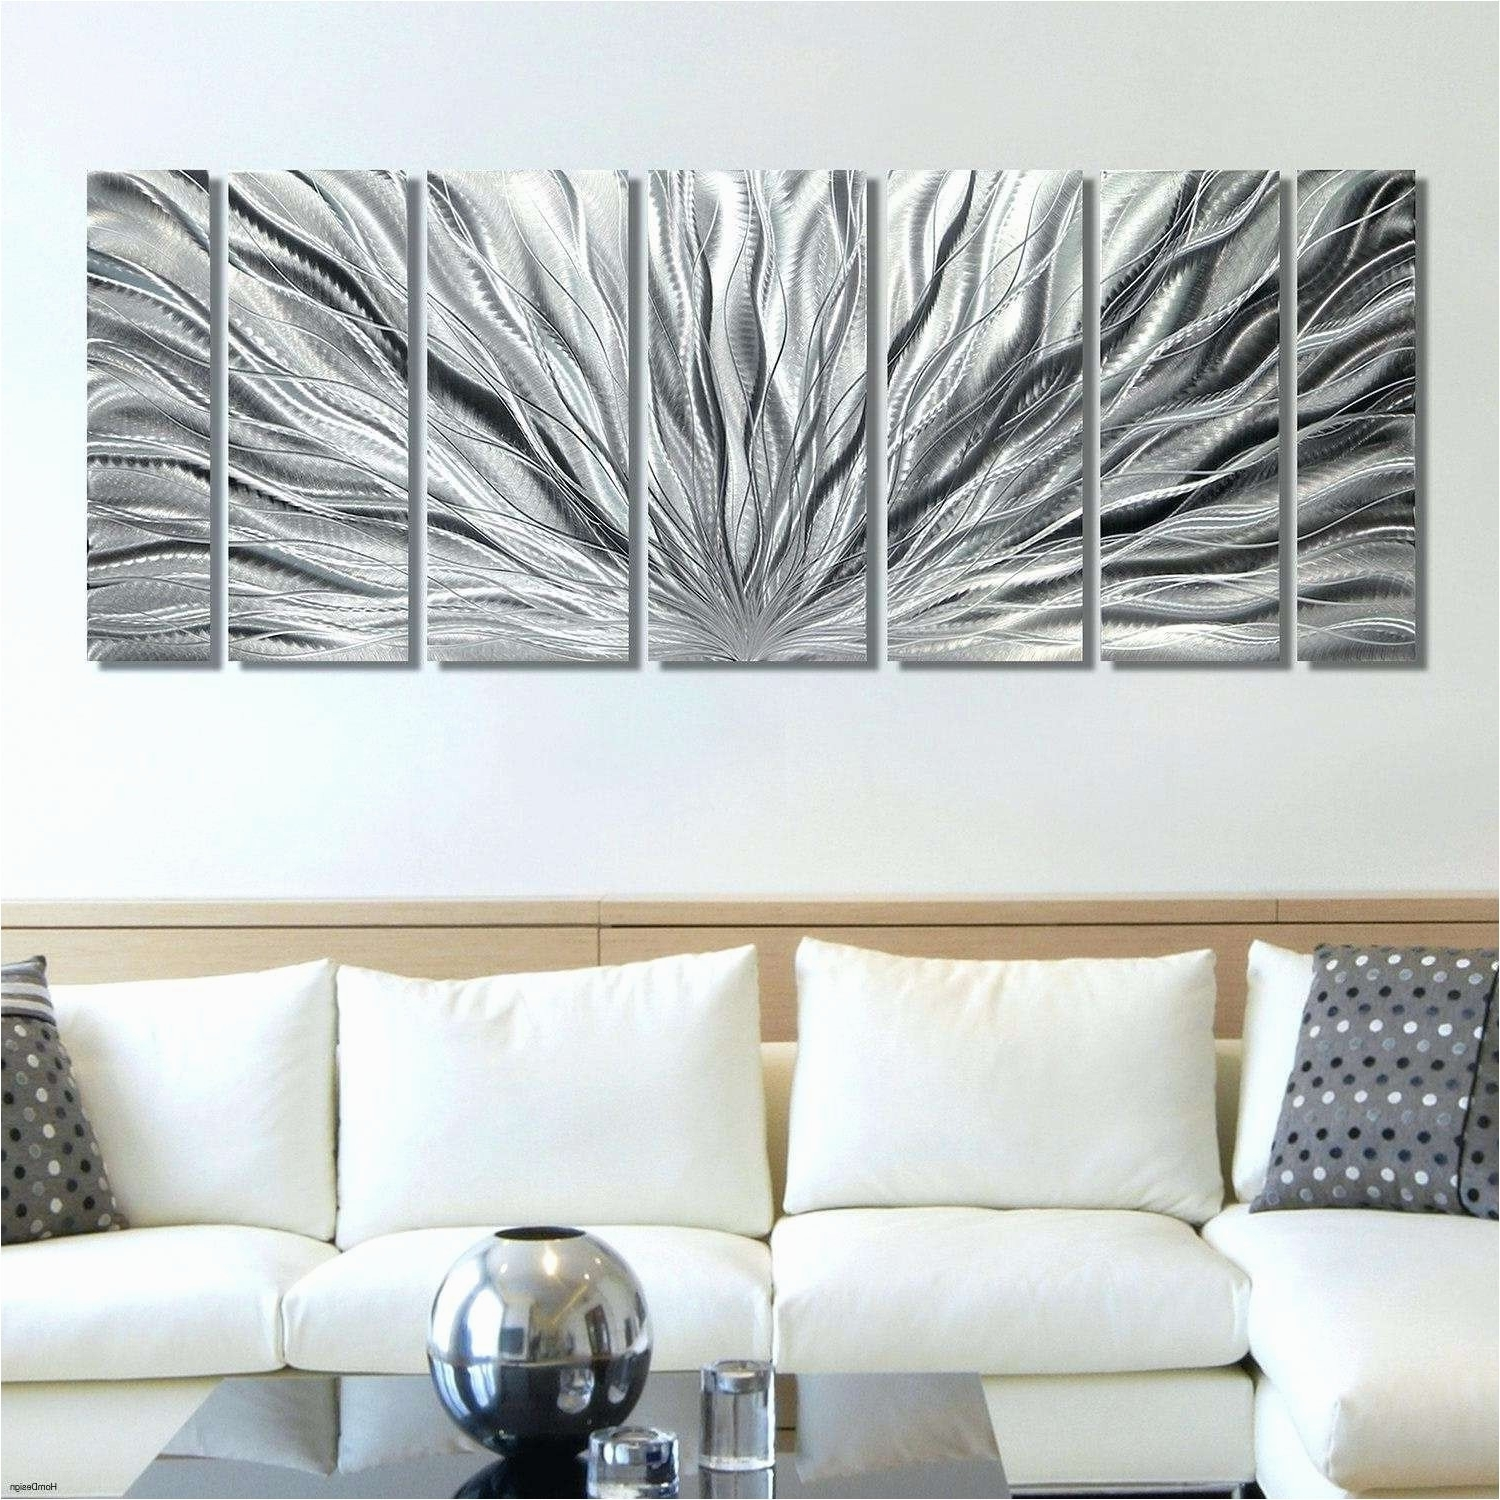 Most Recent Living Room Corner Wall Decor Luxury Wall Art For Living Room Ideas In Corner Wall Art (View 9 of 15)